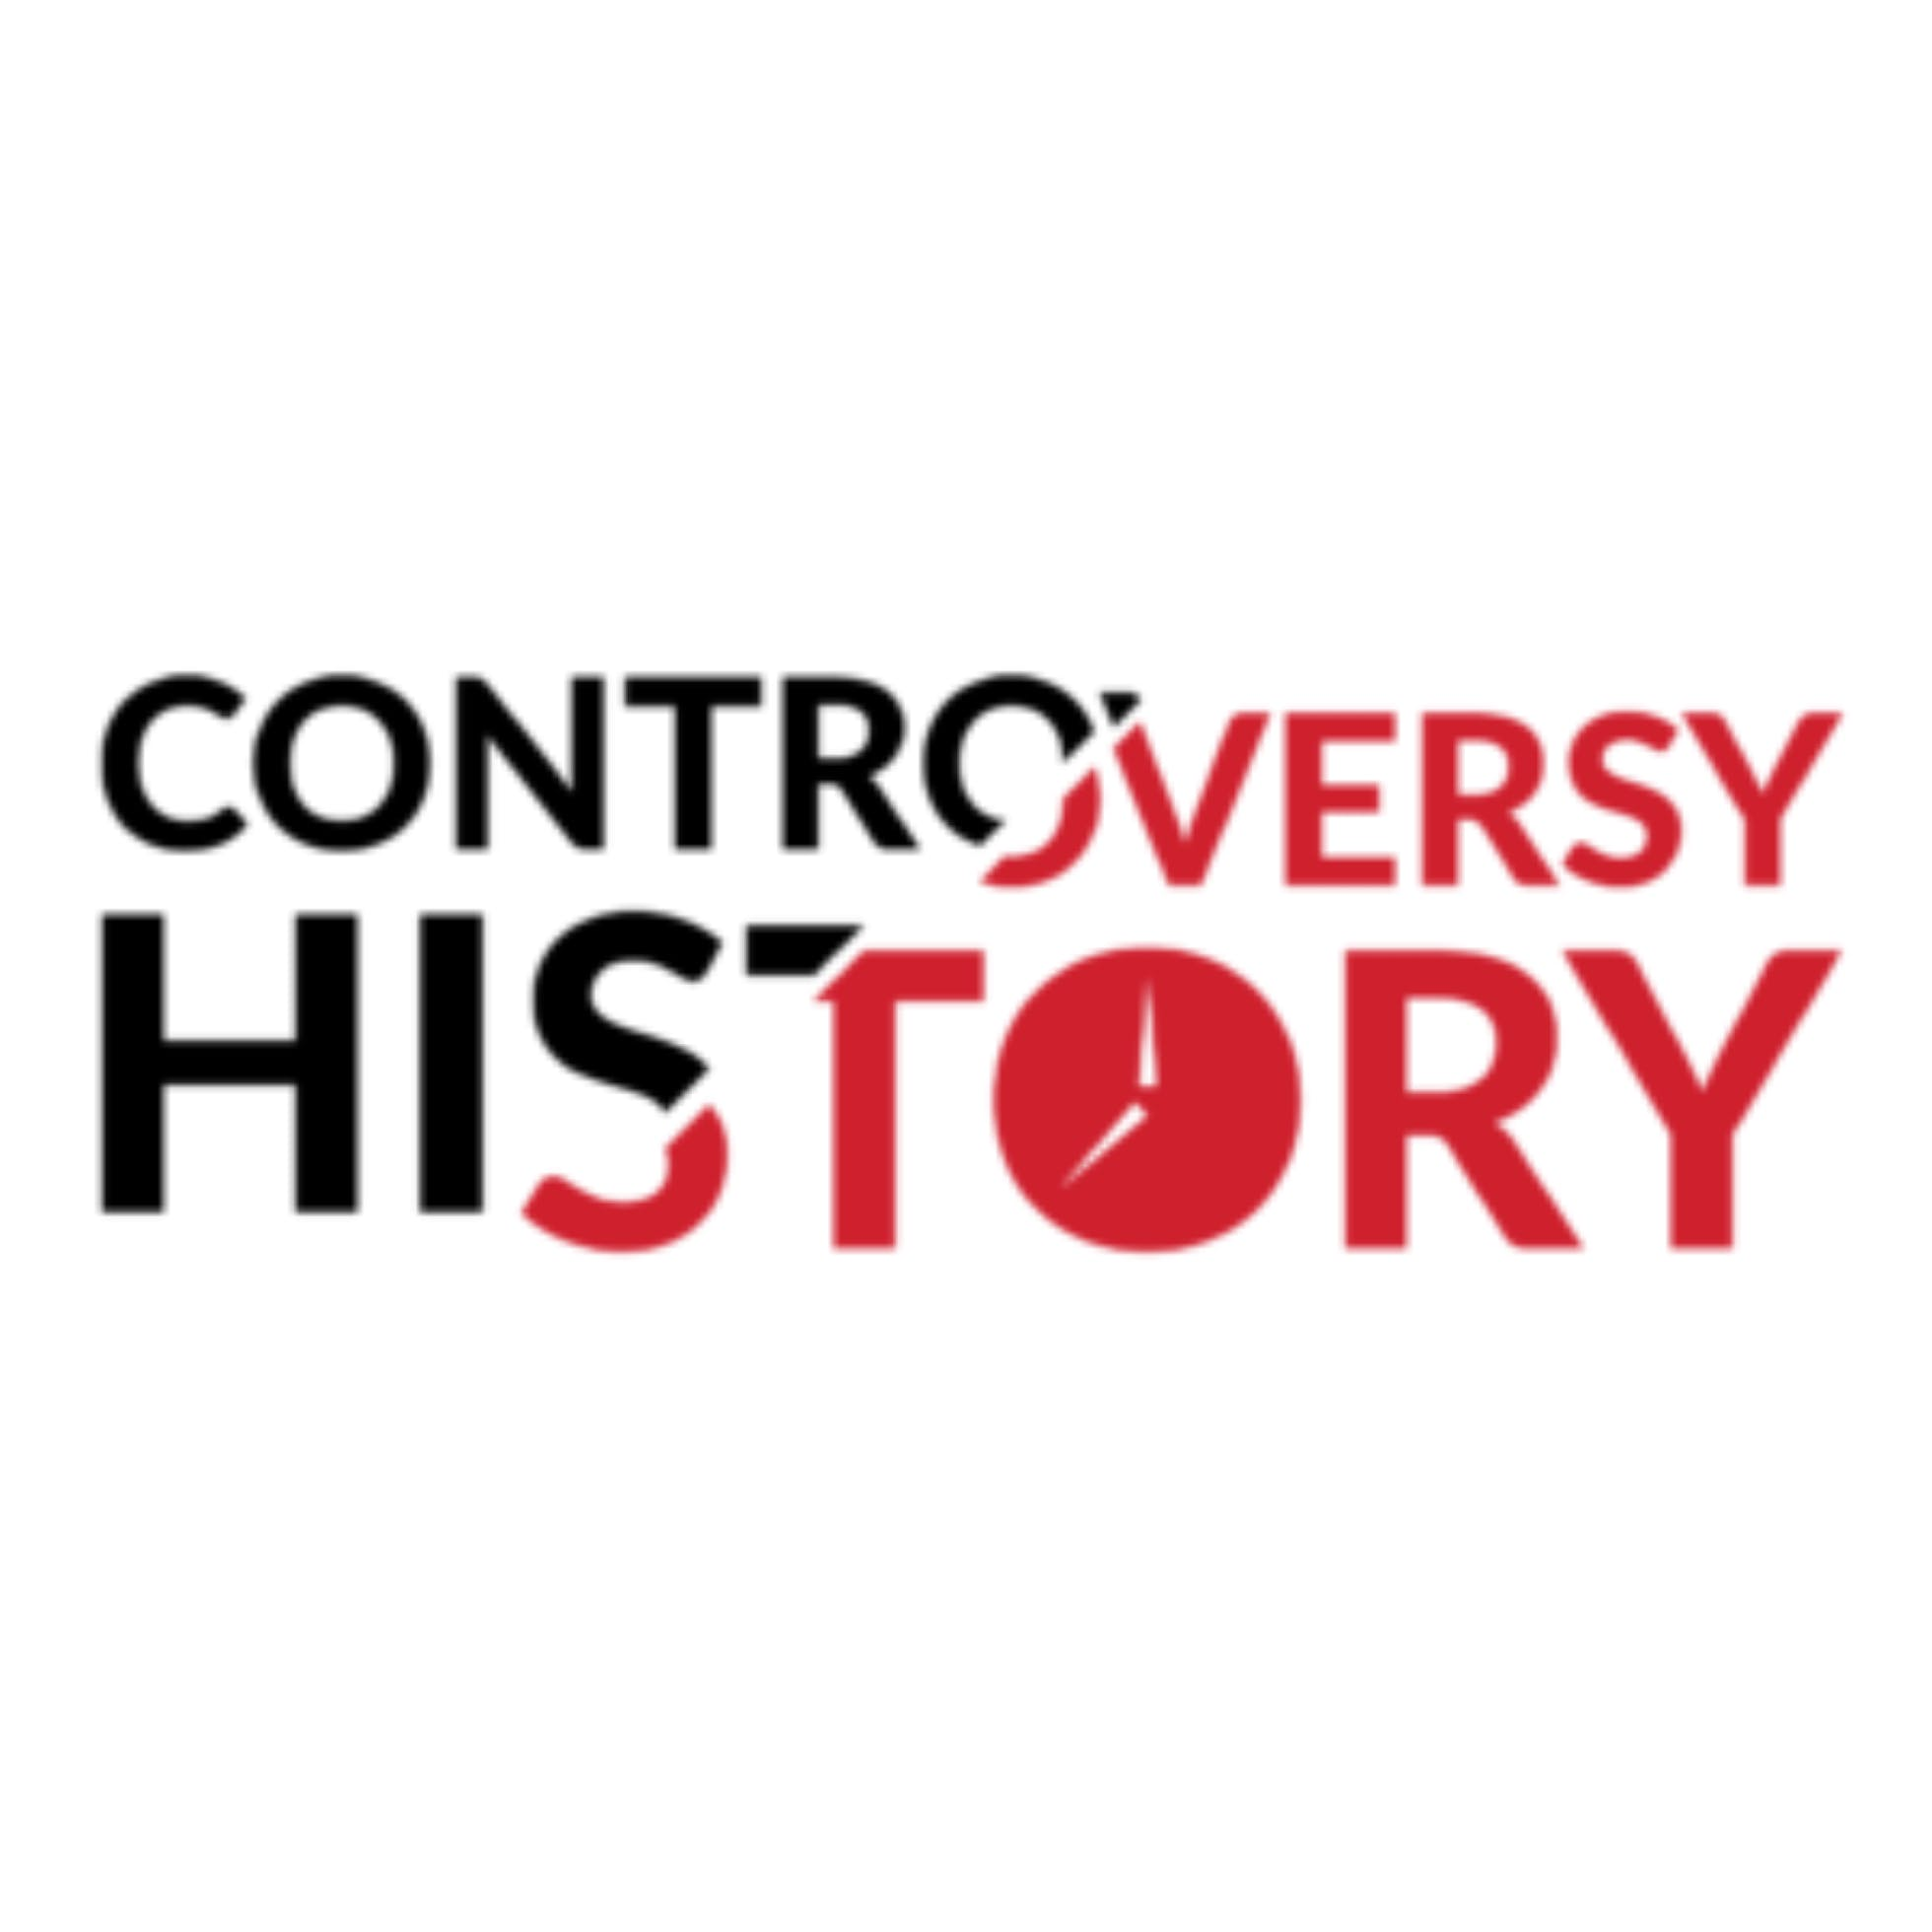 Controversy/History: 2020 and Mental Health